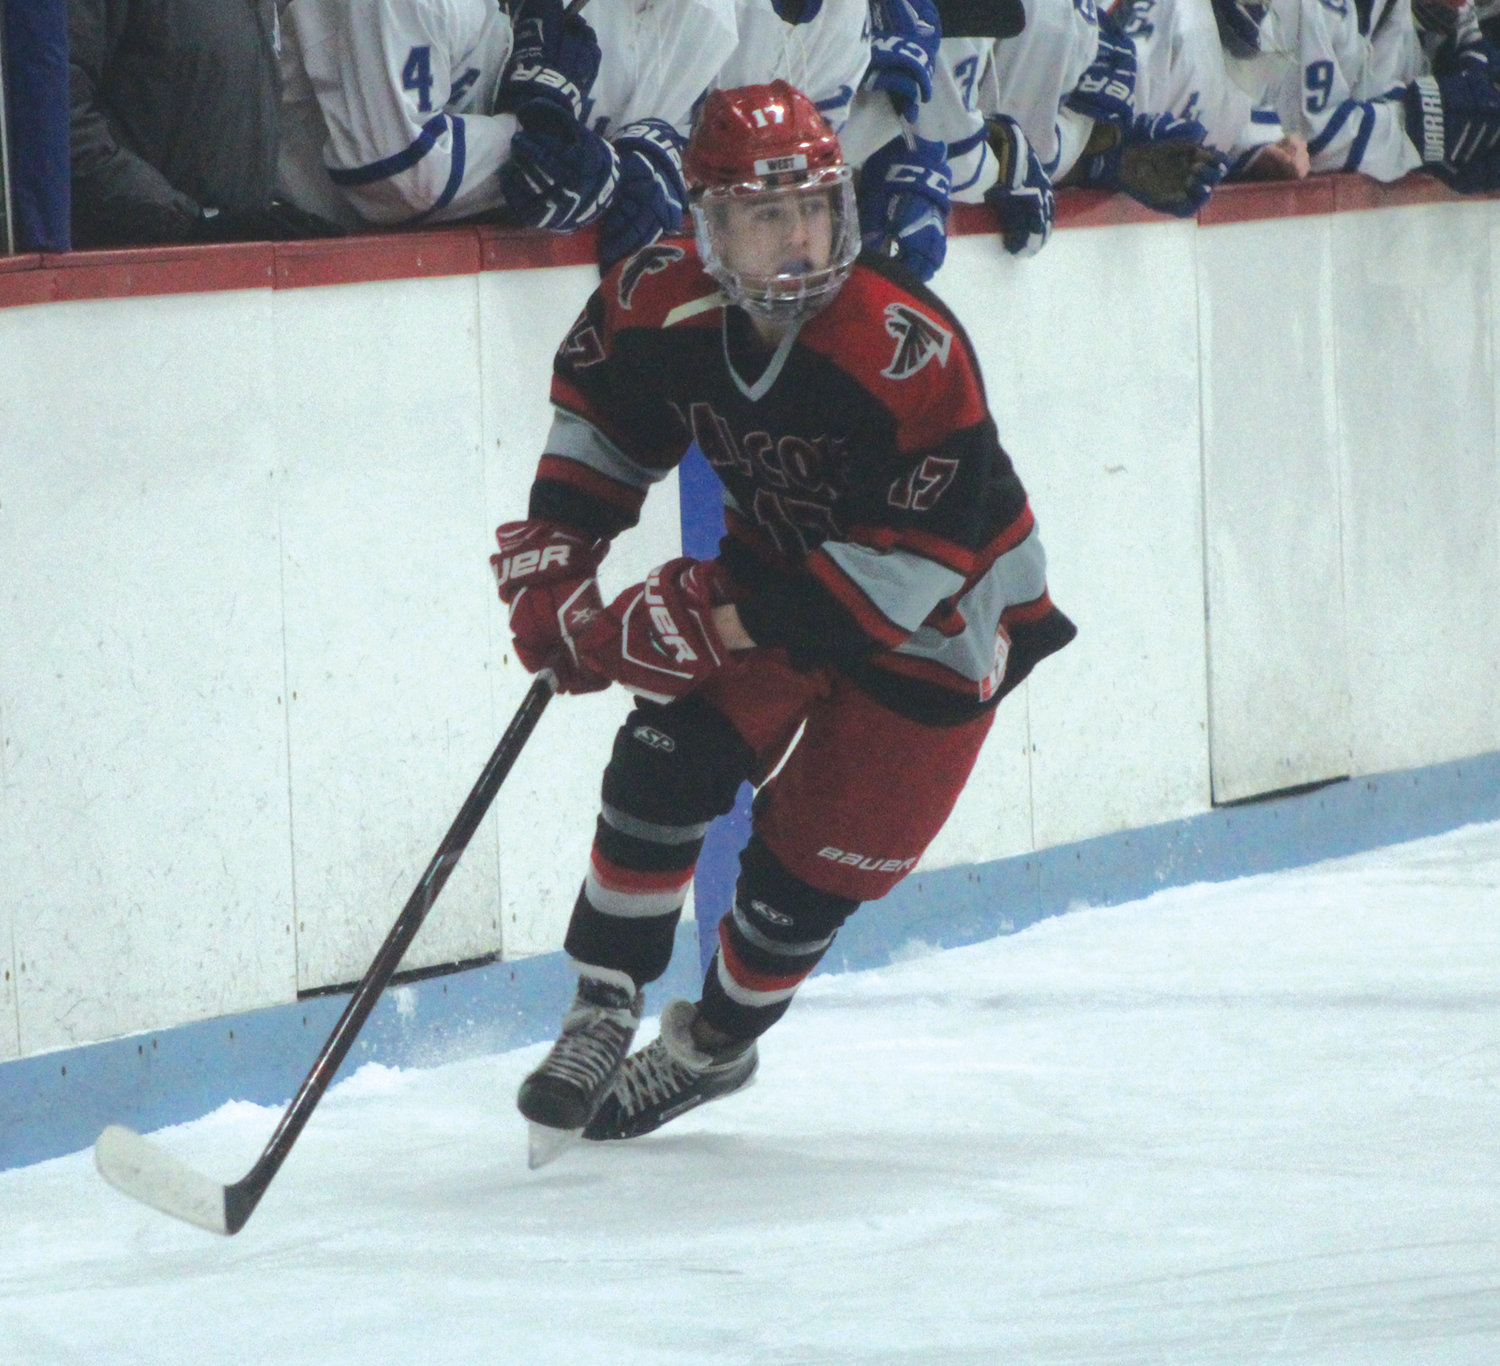 ALONG THE BOARDS: West's Andrew Martin during Game 1 against Cumberland.